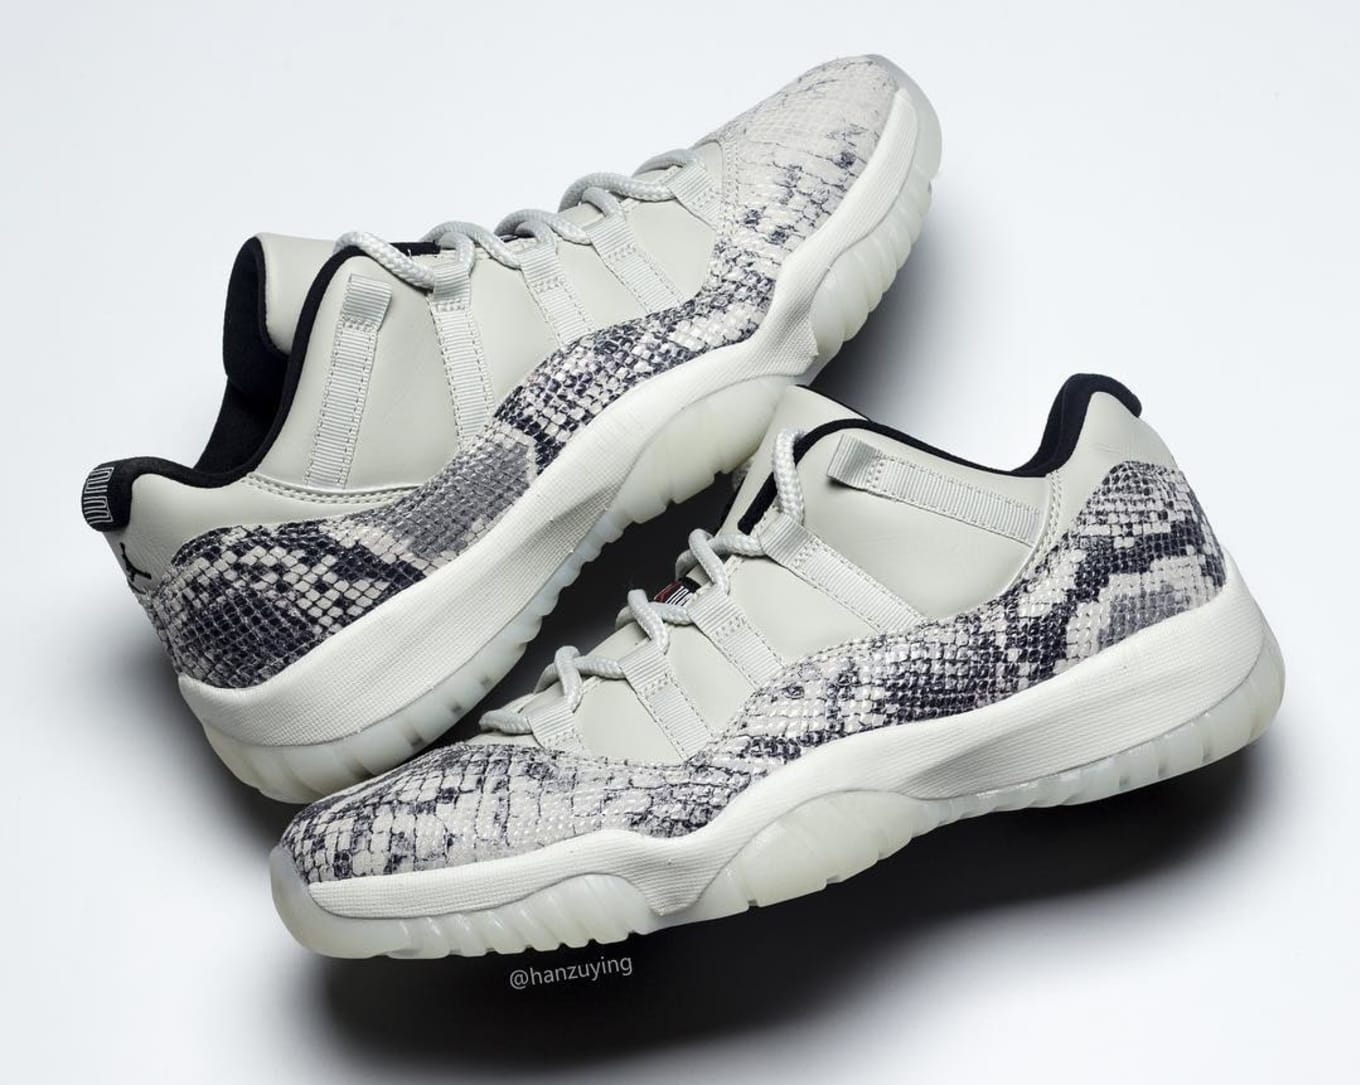 34cae3b1f33 Air Jordan 11 Low SE  Snakeskin  Release Date CD6846-002